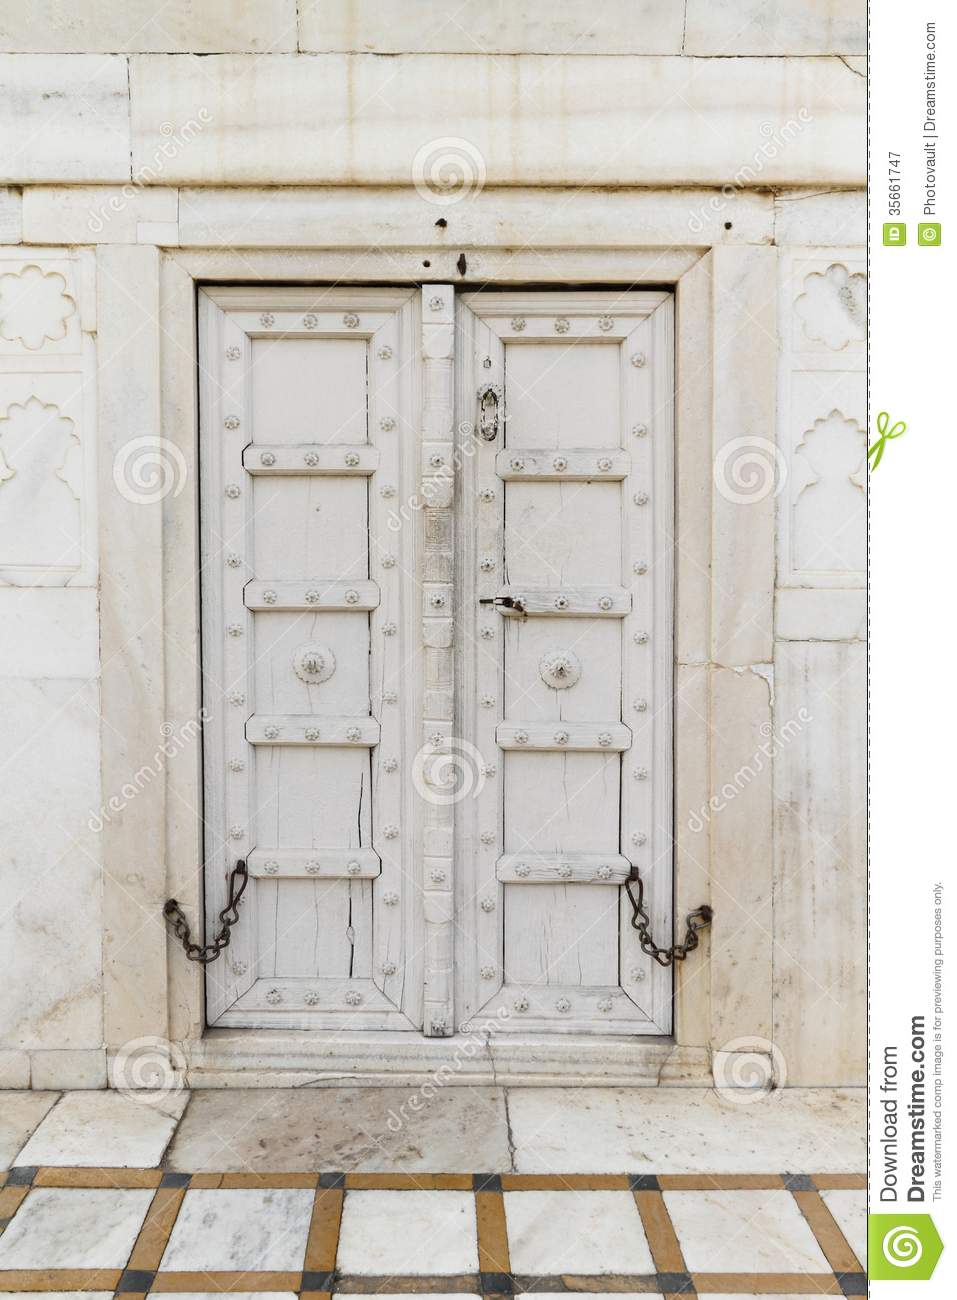 Ancient Wooden Door At Taj Mahal Royalty Free Stock